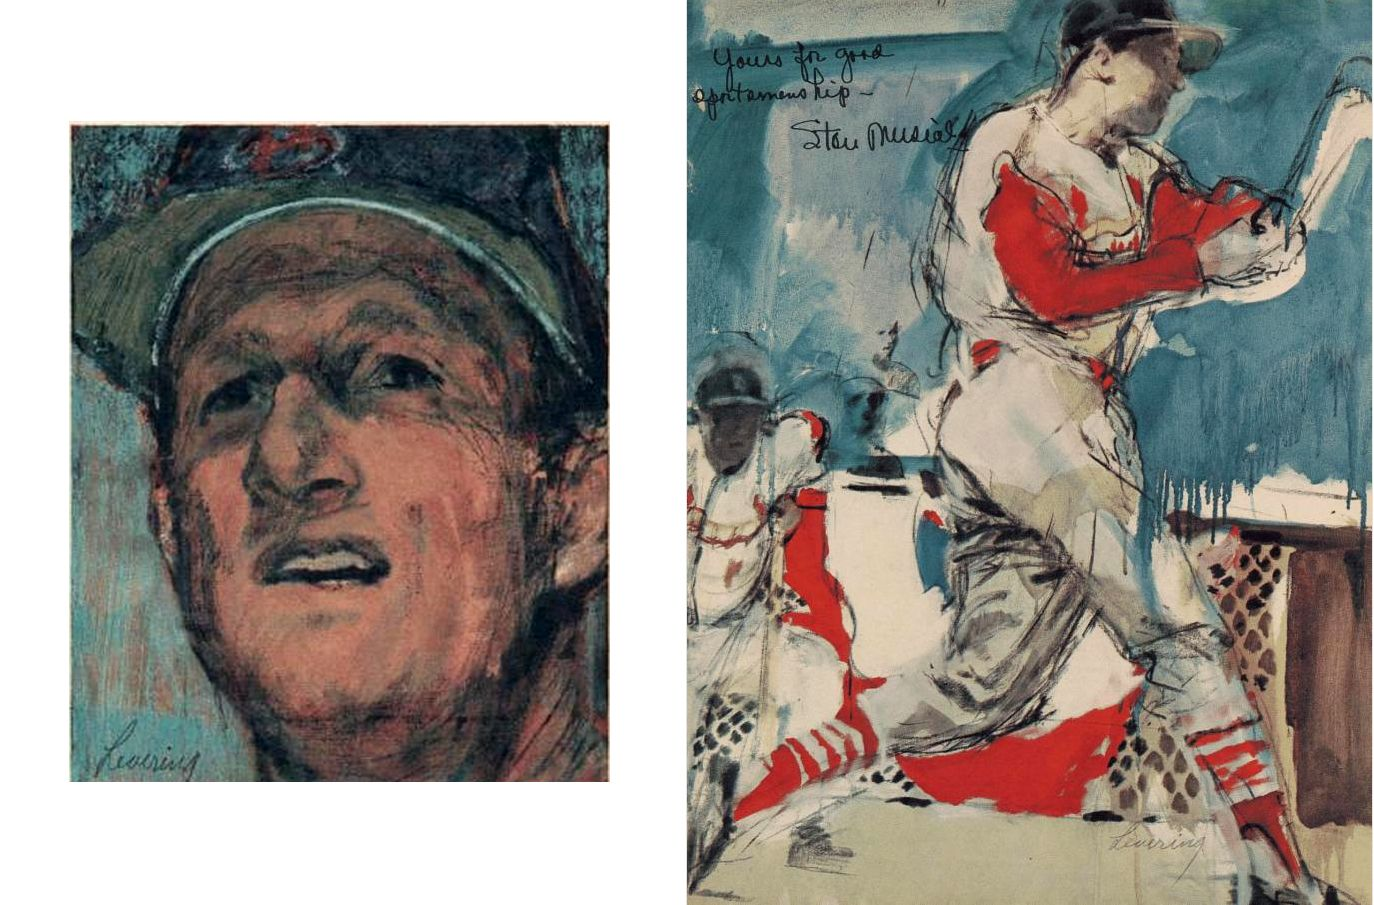 STAN MUSIAL by Bob Levering